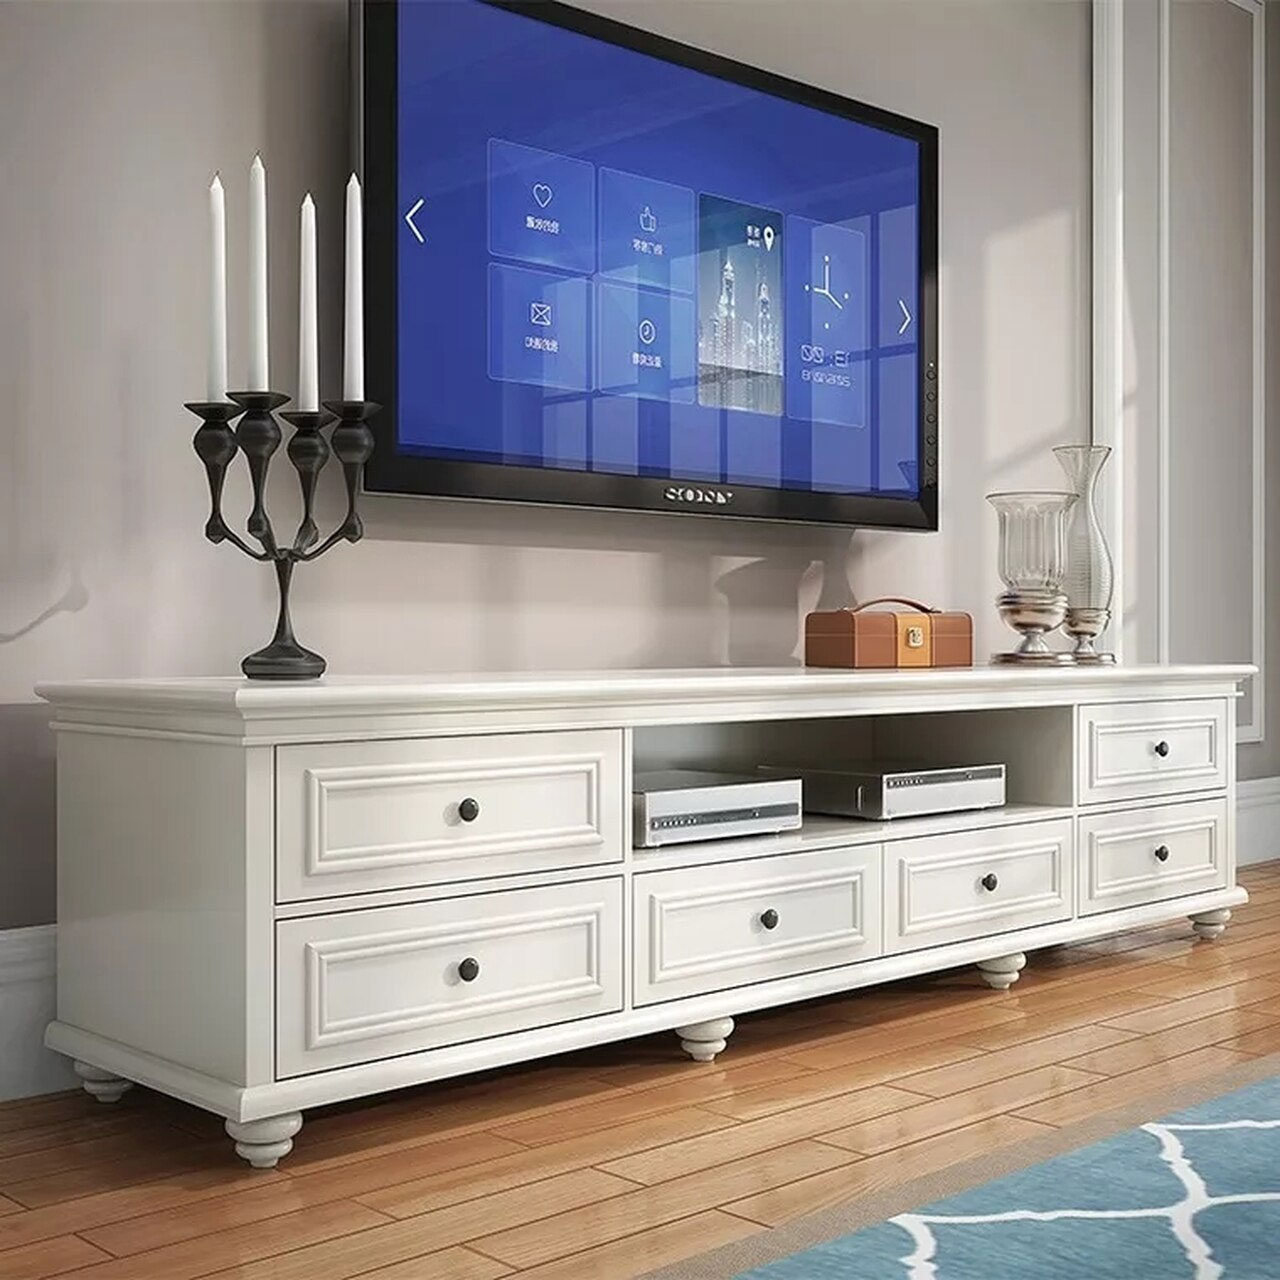 Beata 2M American Country Style White TV Stand